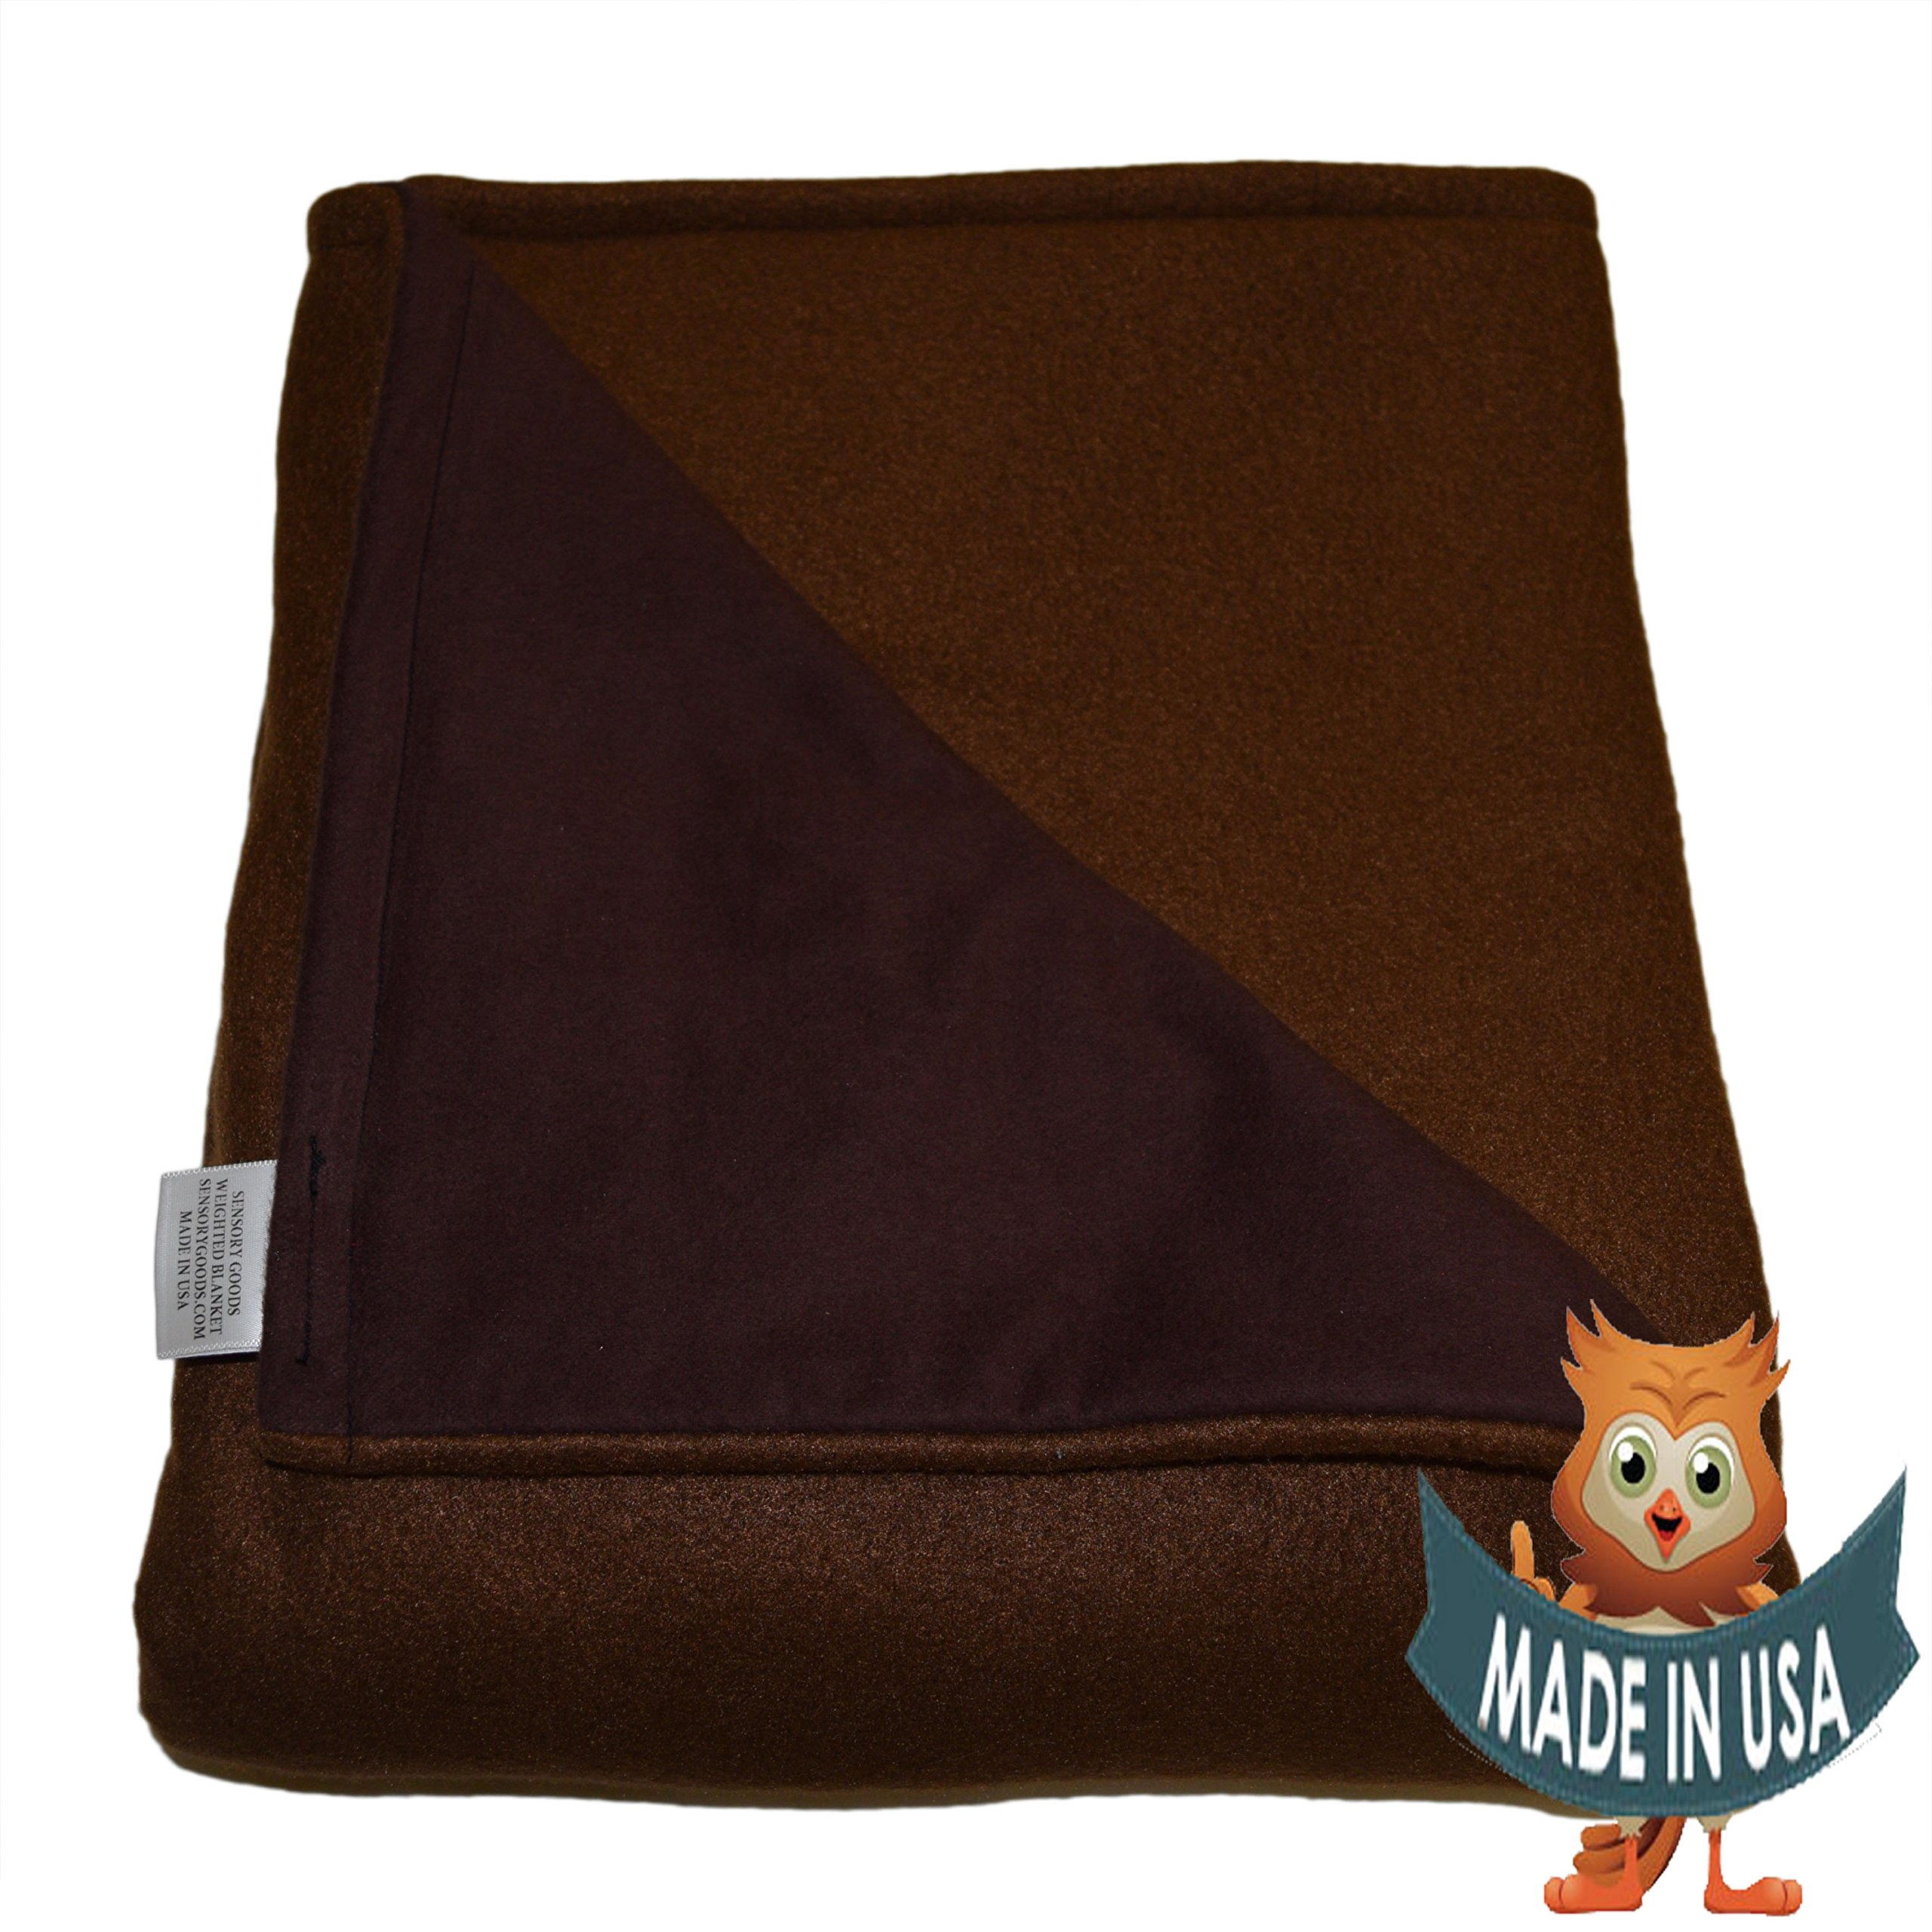 Adult Extra Large Weighted Blanket by Sensory Goods 25lb Extra Heavy Pressure - Brown - Fleece/Flannel (58'' x 80'')